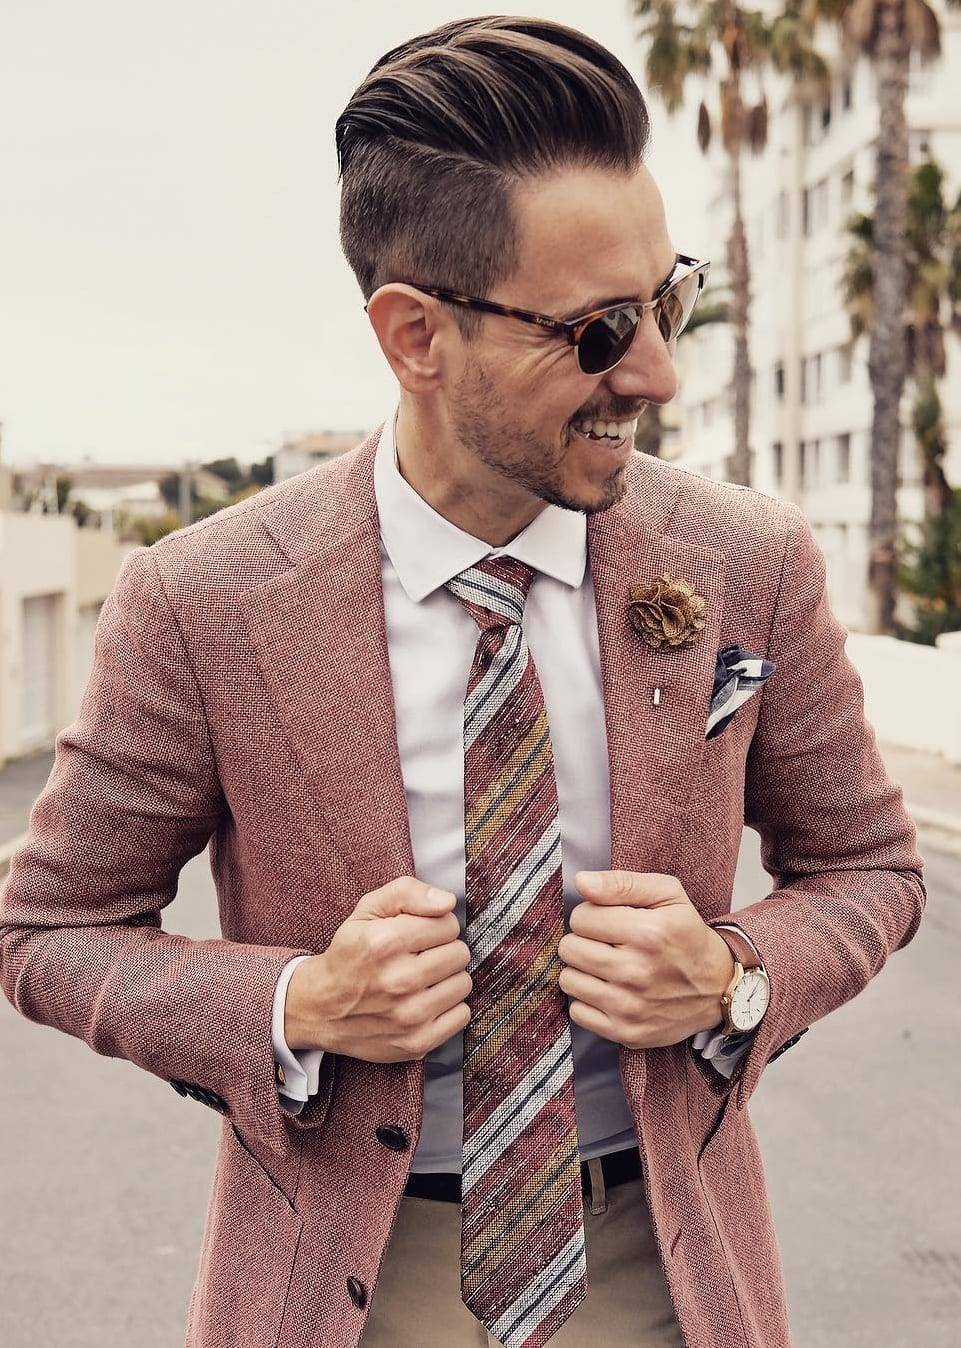 10 Stunning and Stylish Ties for Men